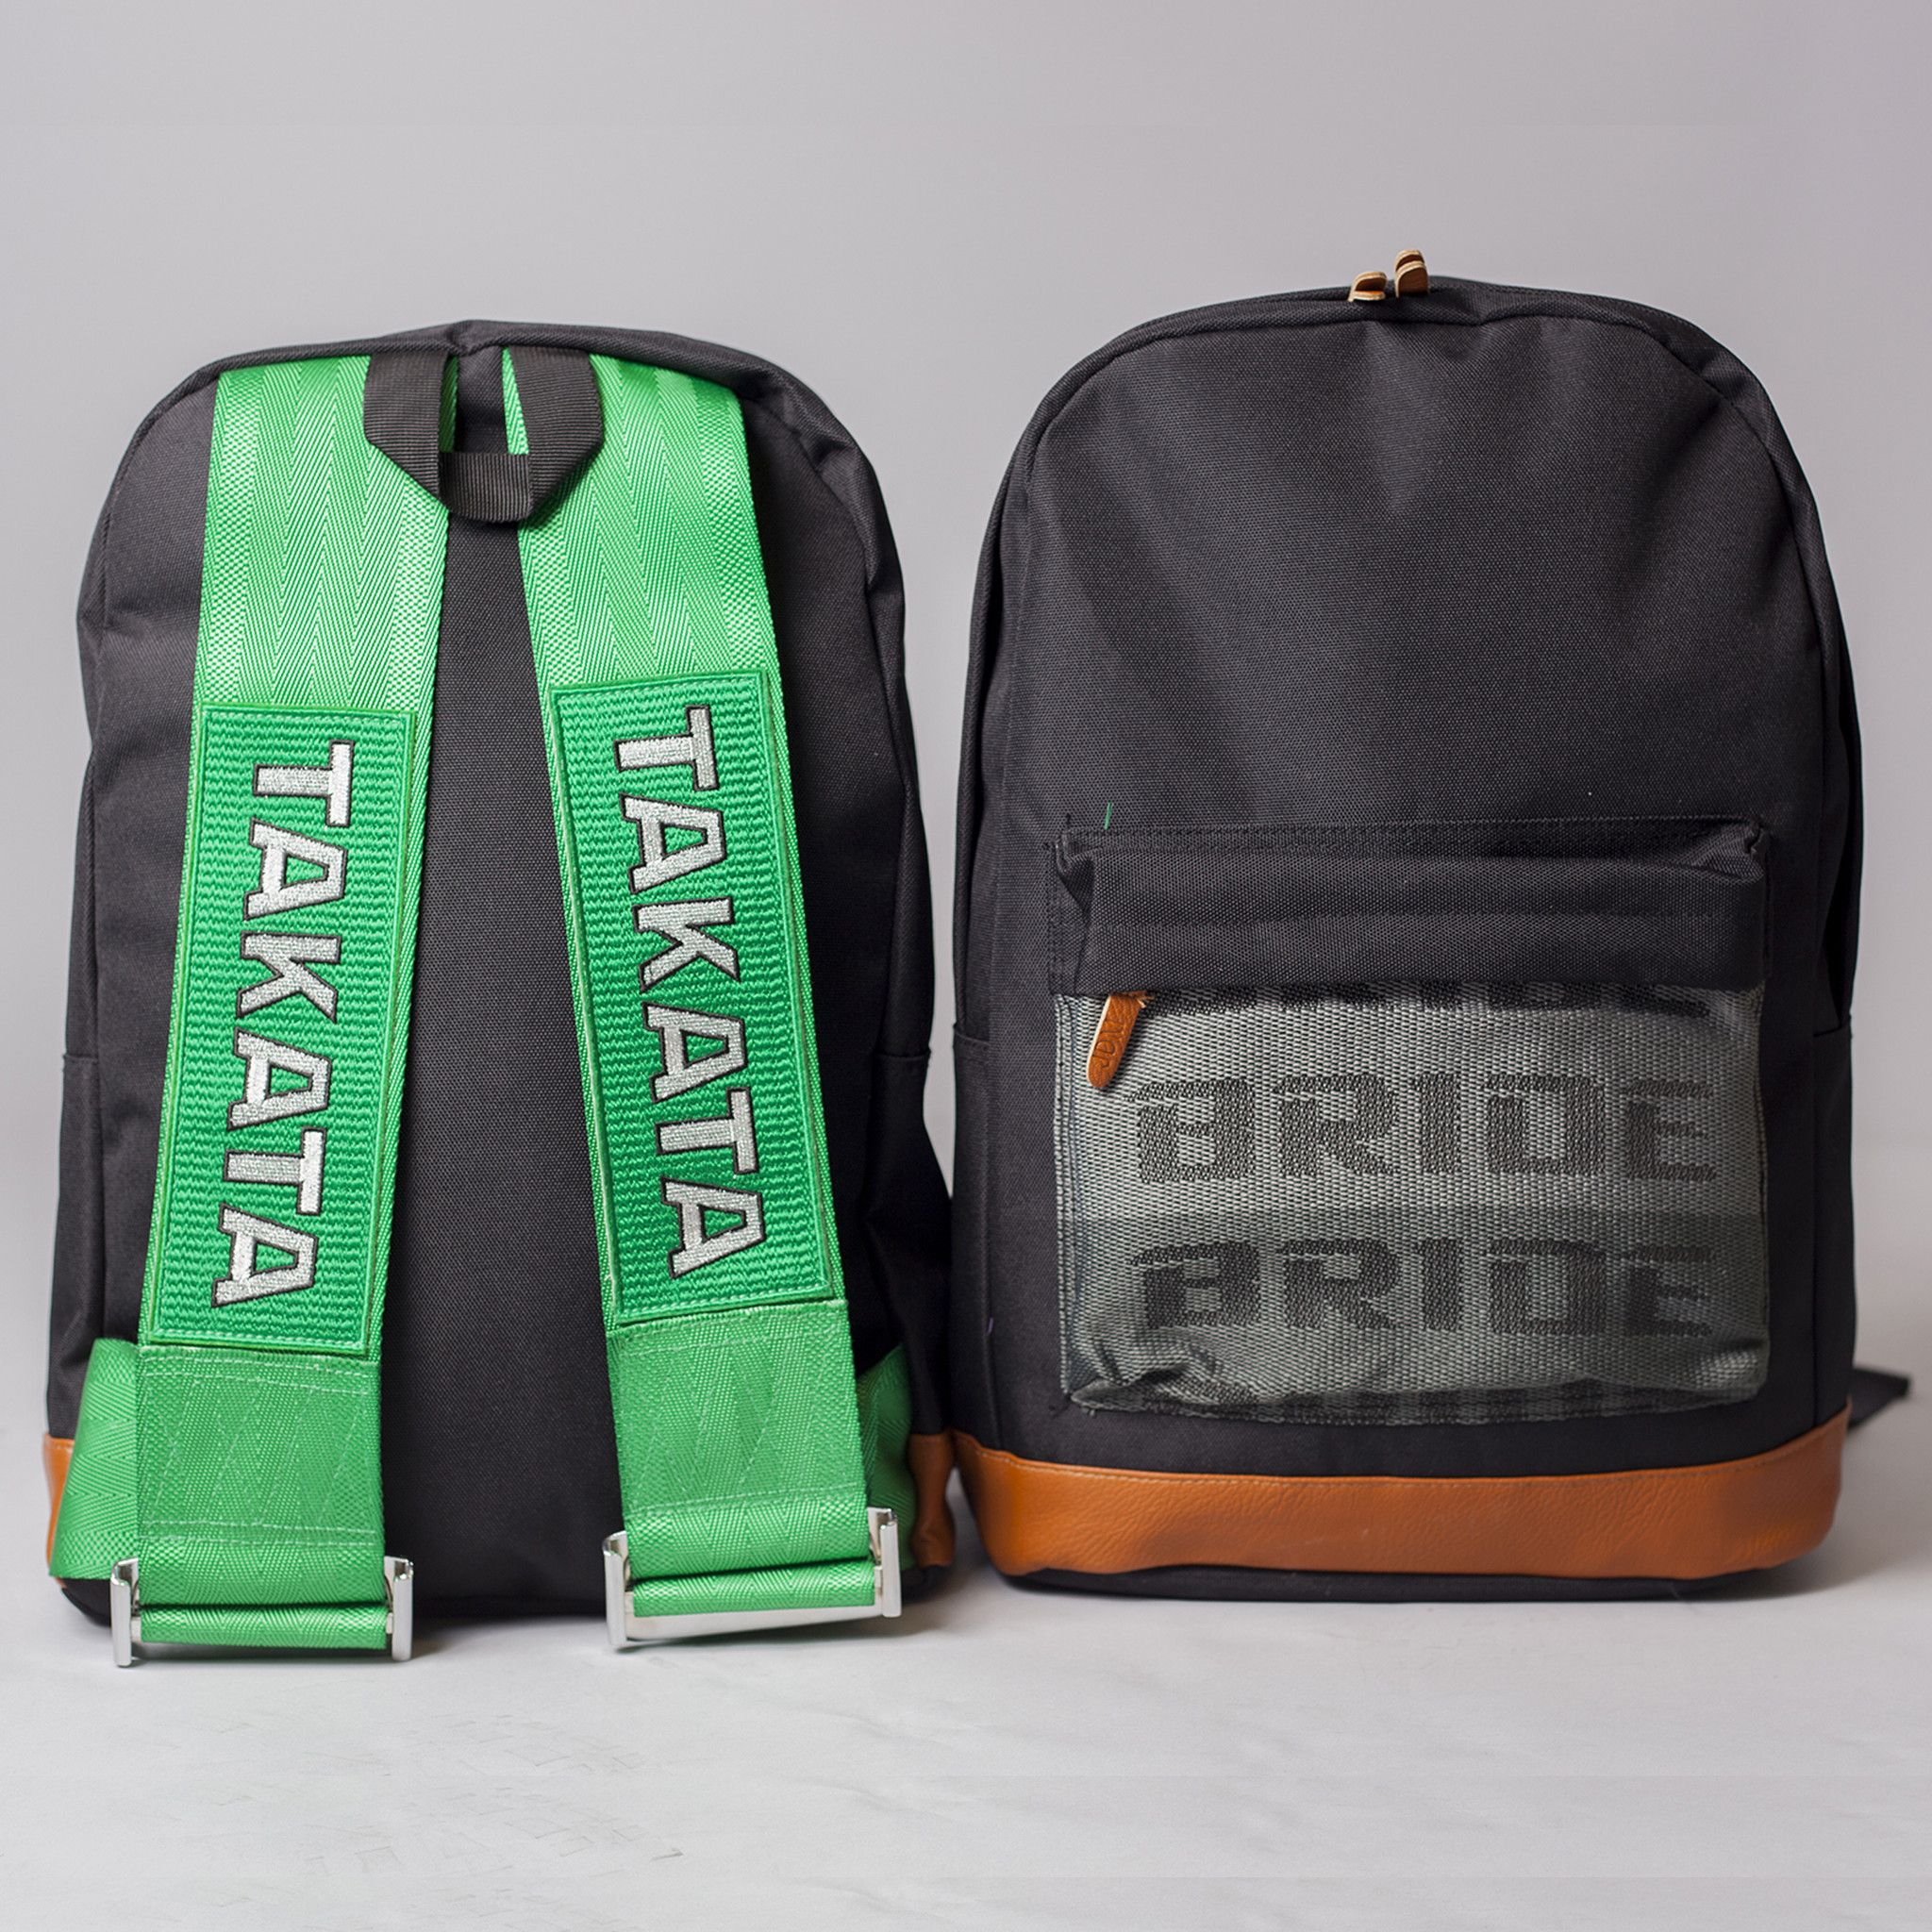 Takata Backpack Green Harness Car Parts And Accessories Car Accessories Backpacks